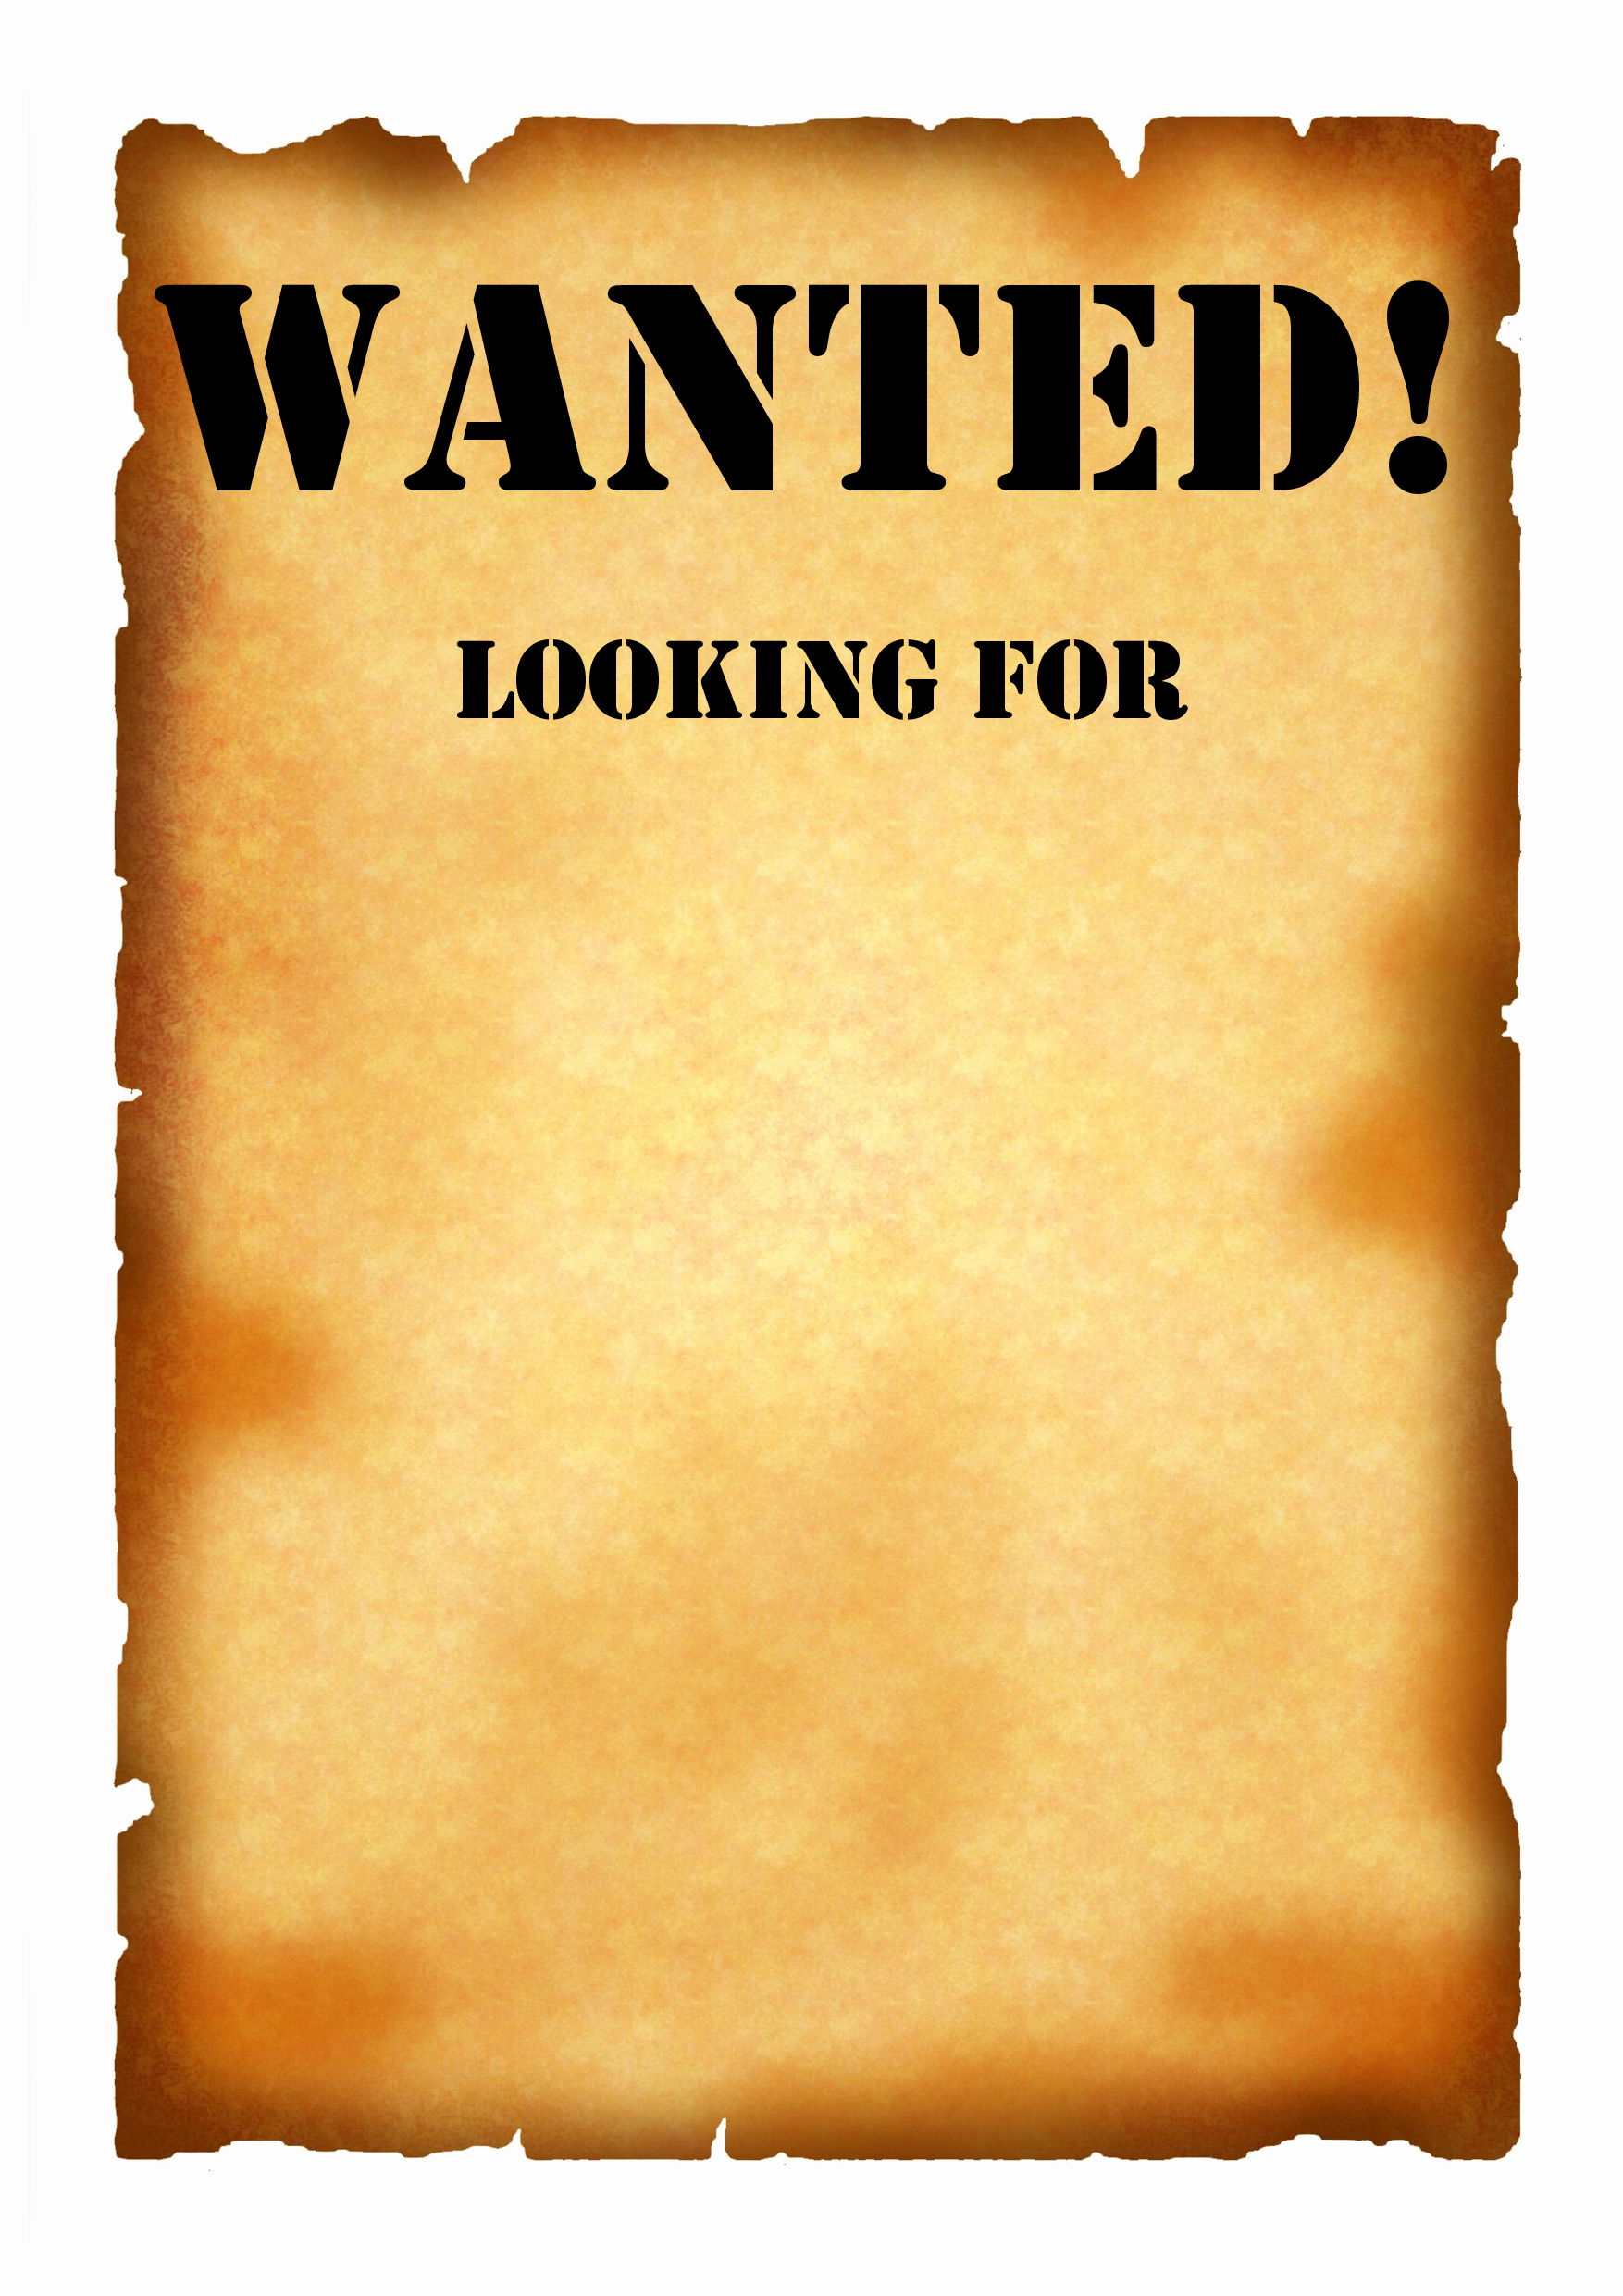 Free Wanted Poster Template Awesome Wanted Poster Template 2 by Lizzy2008